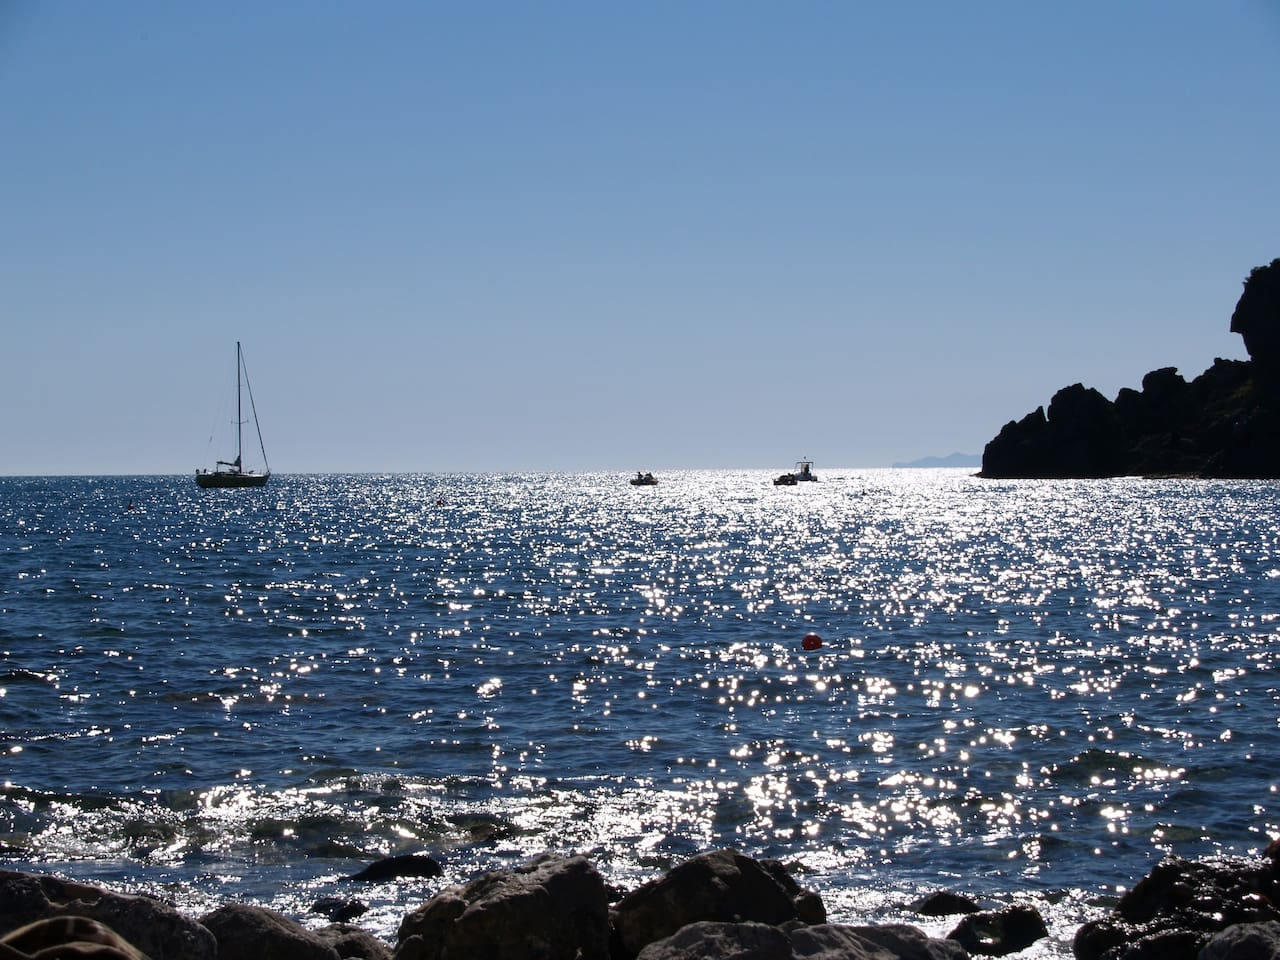 The Mediterranean is always amazing, in any season. What a treat to be able to enjoy this whenever you like..